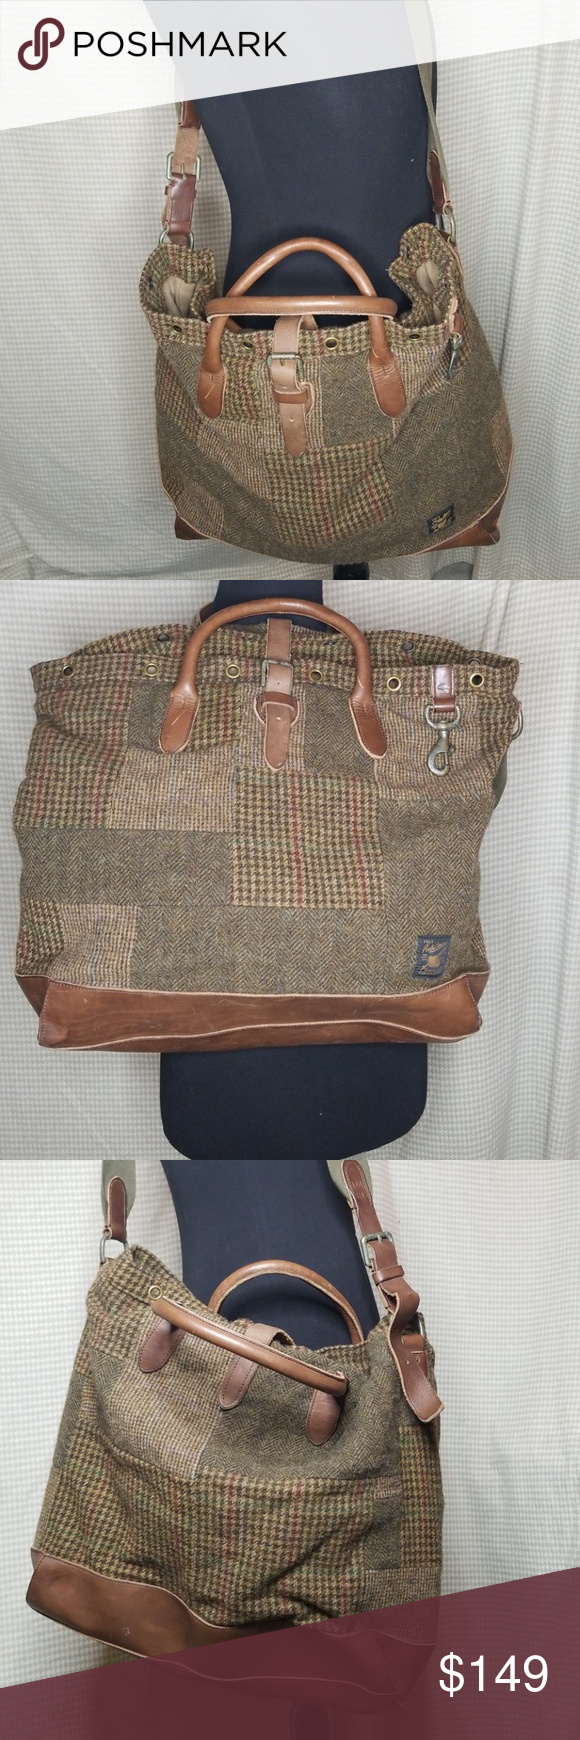 d2b1101abfd Polo Ralph Lauren overnight bag in wool patchwork Absolutely gorgeous wool  patchwork plaid print and 100